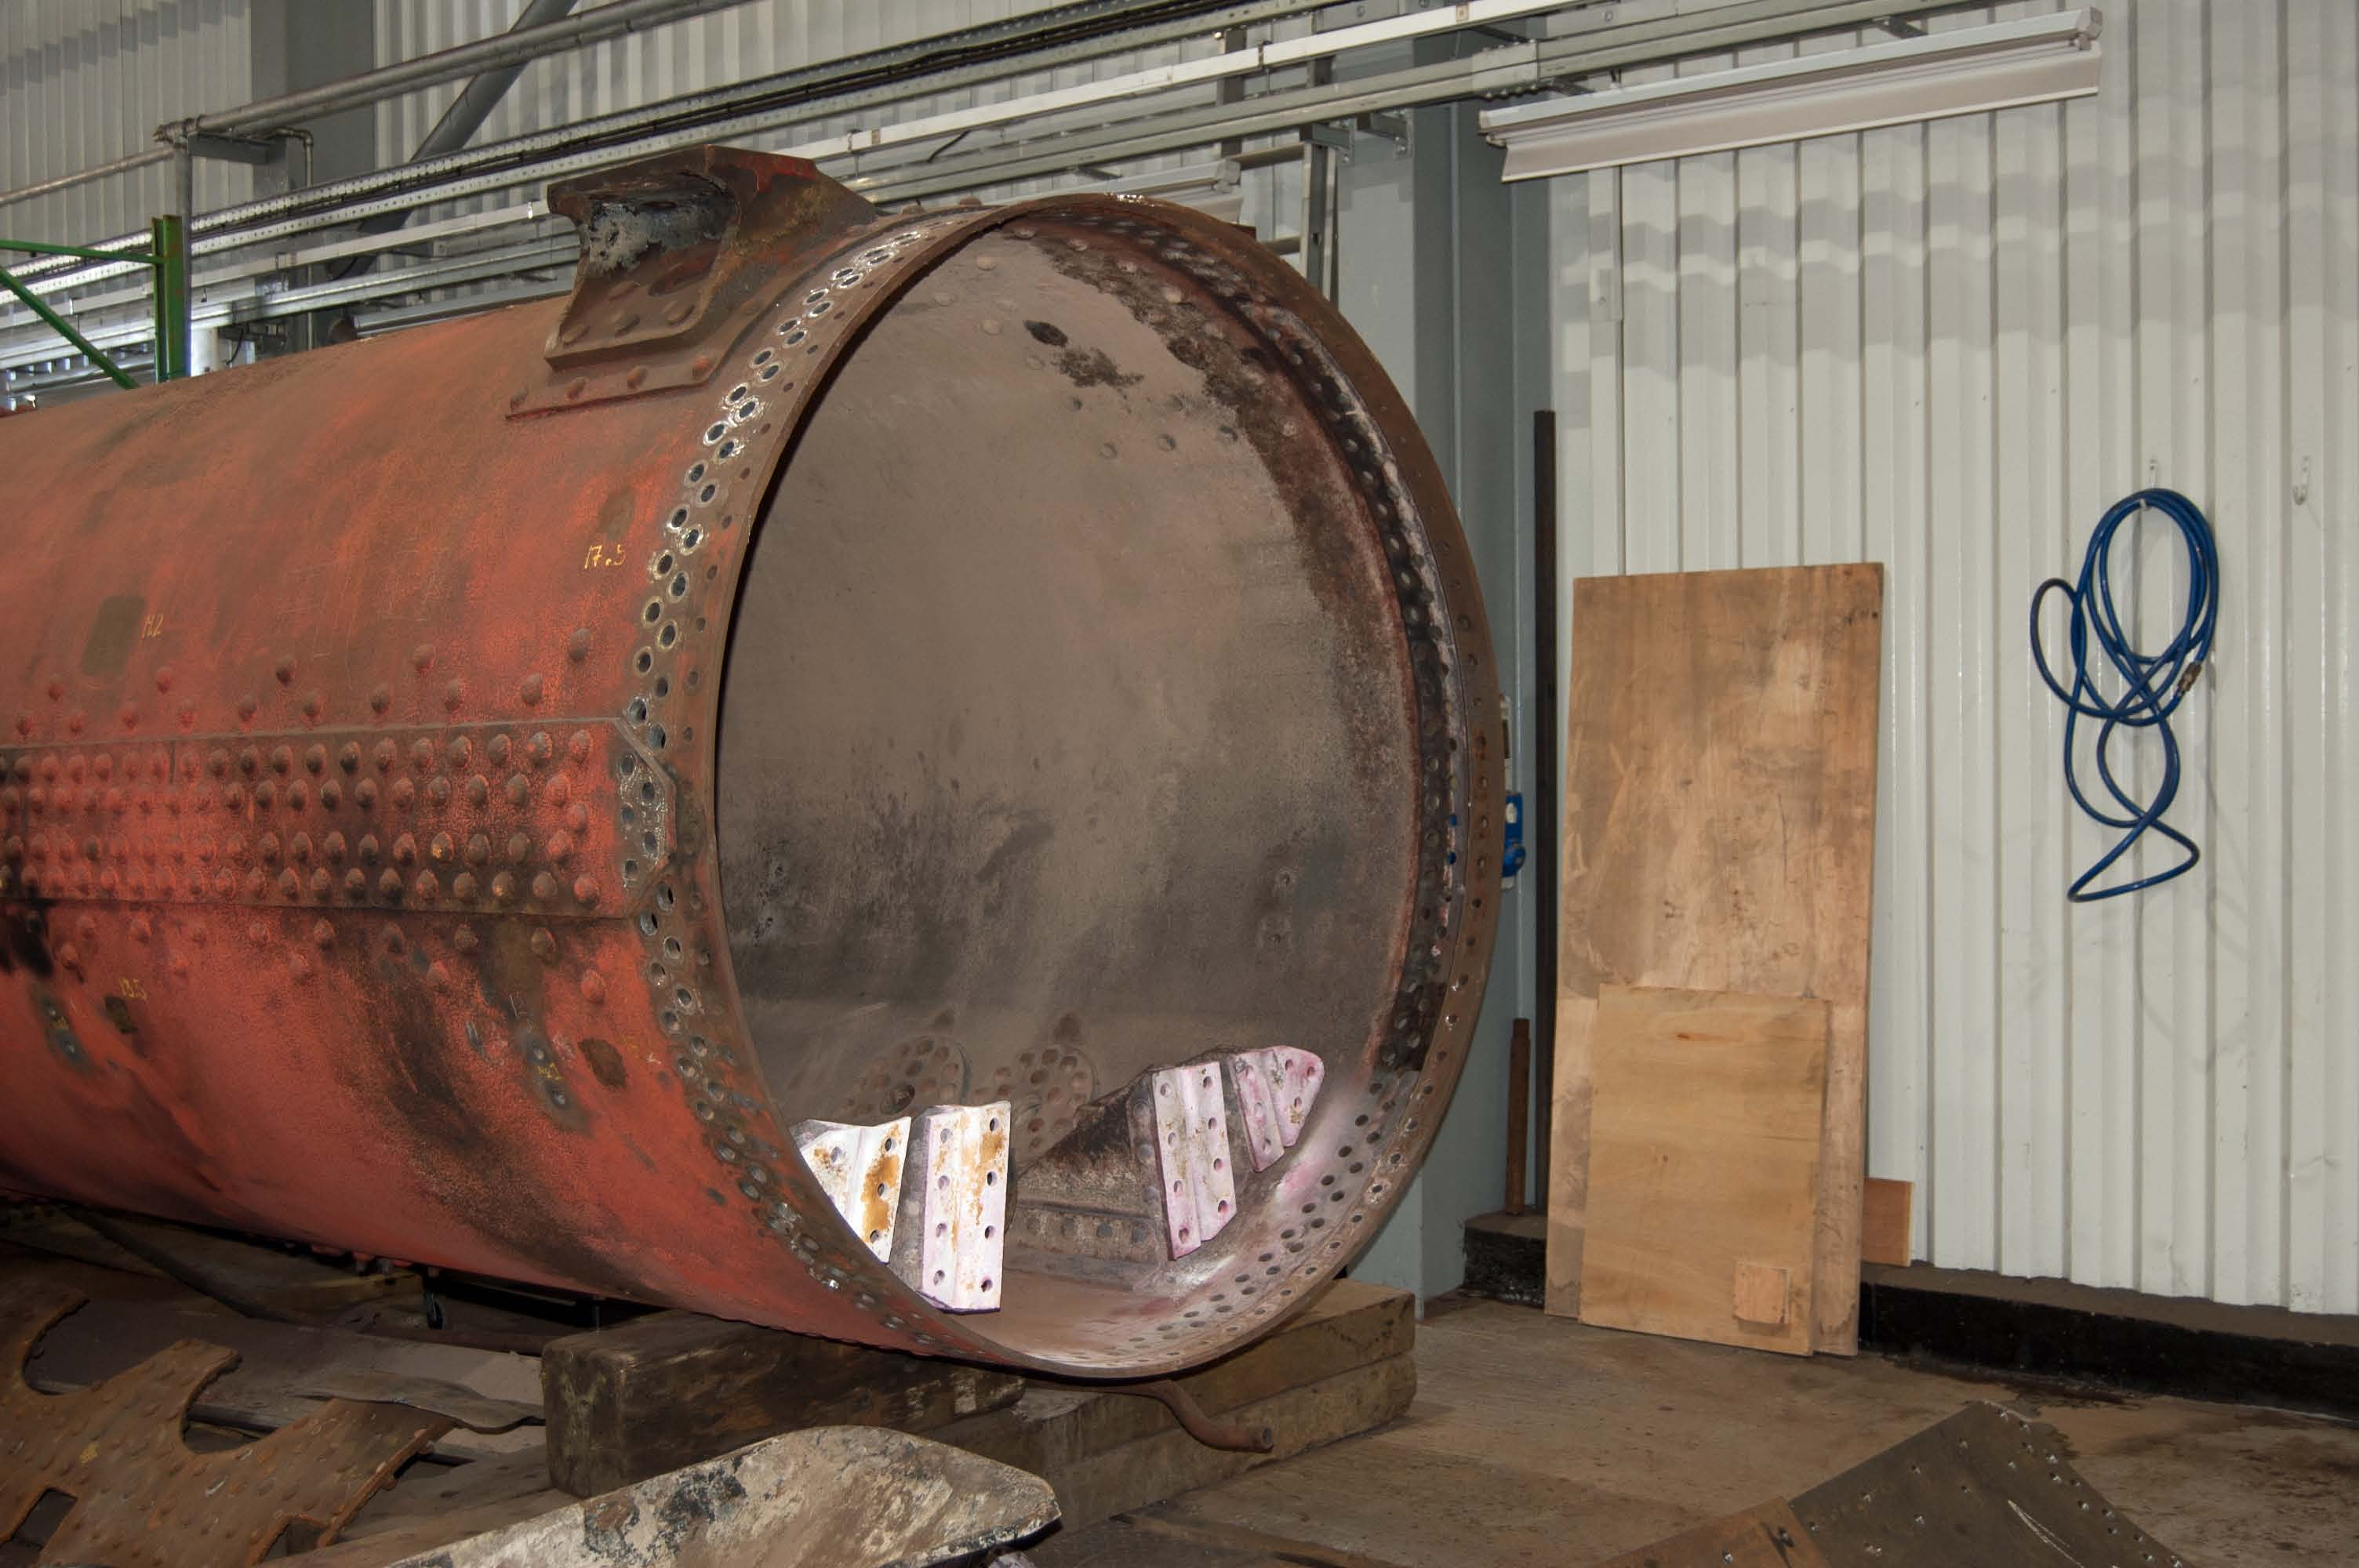 The smokebox and the old front tubeplate have been removed